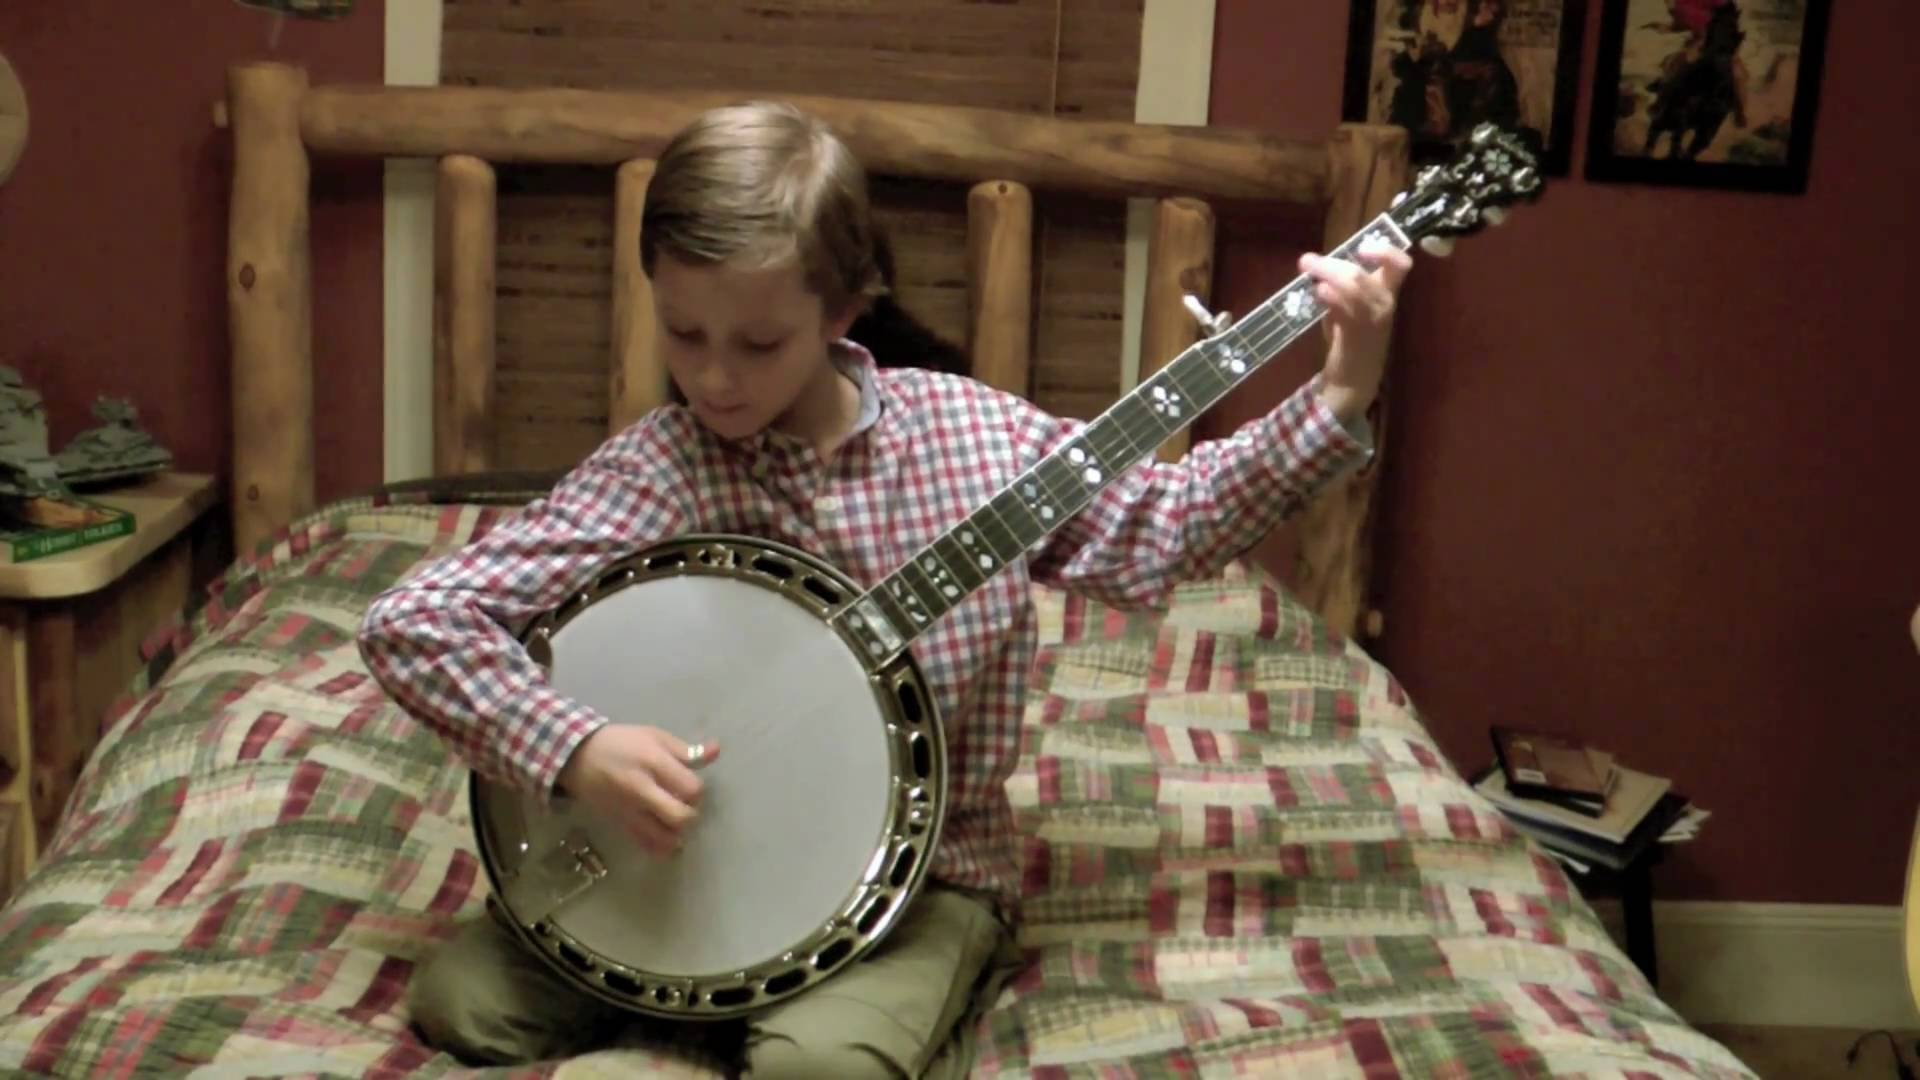 Watch: 3 Brothers From New Jersey Are Taking The Bluegrass World By Storm